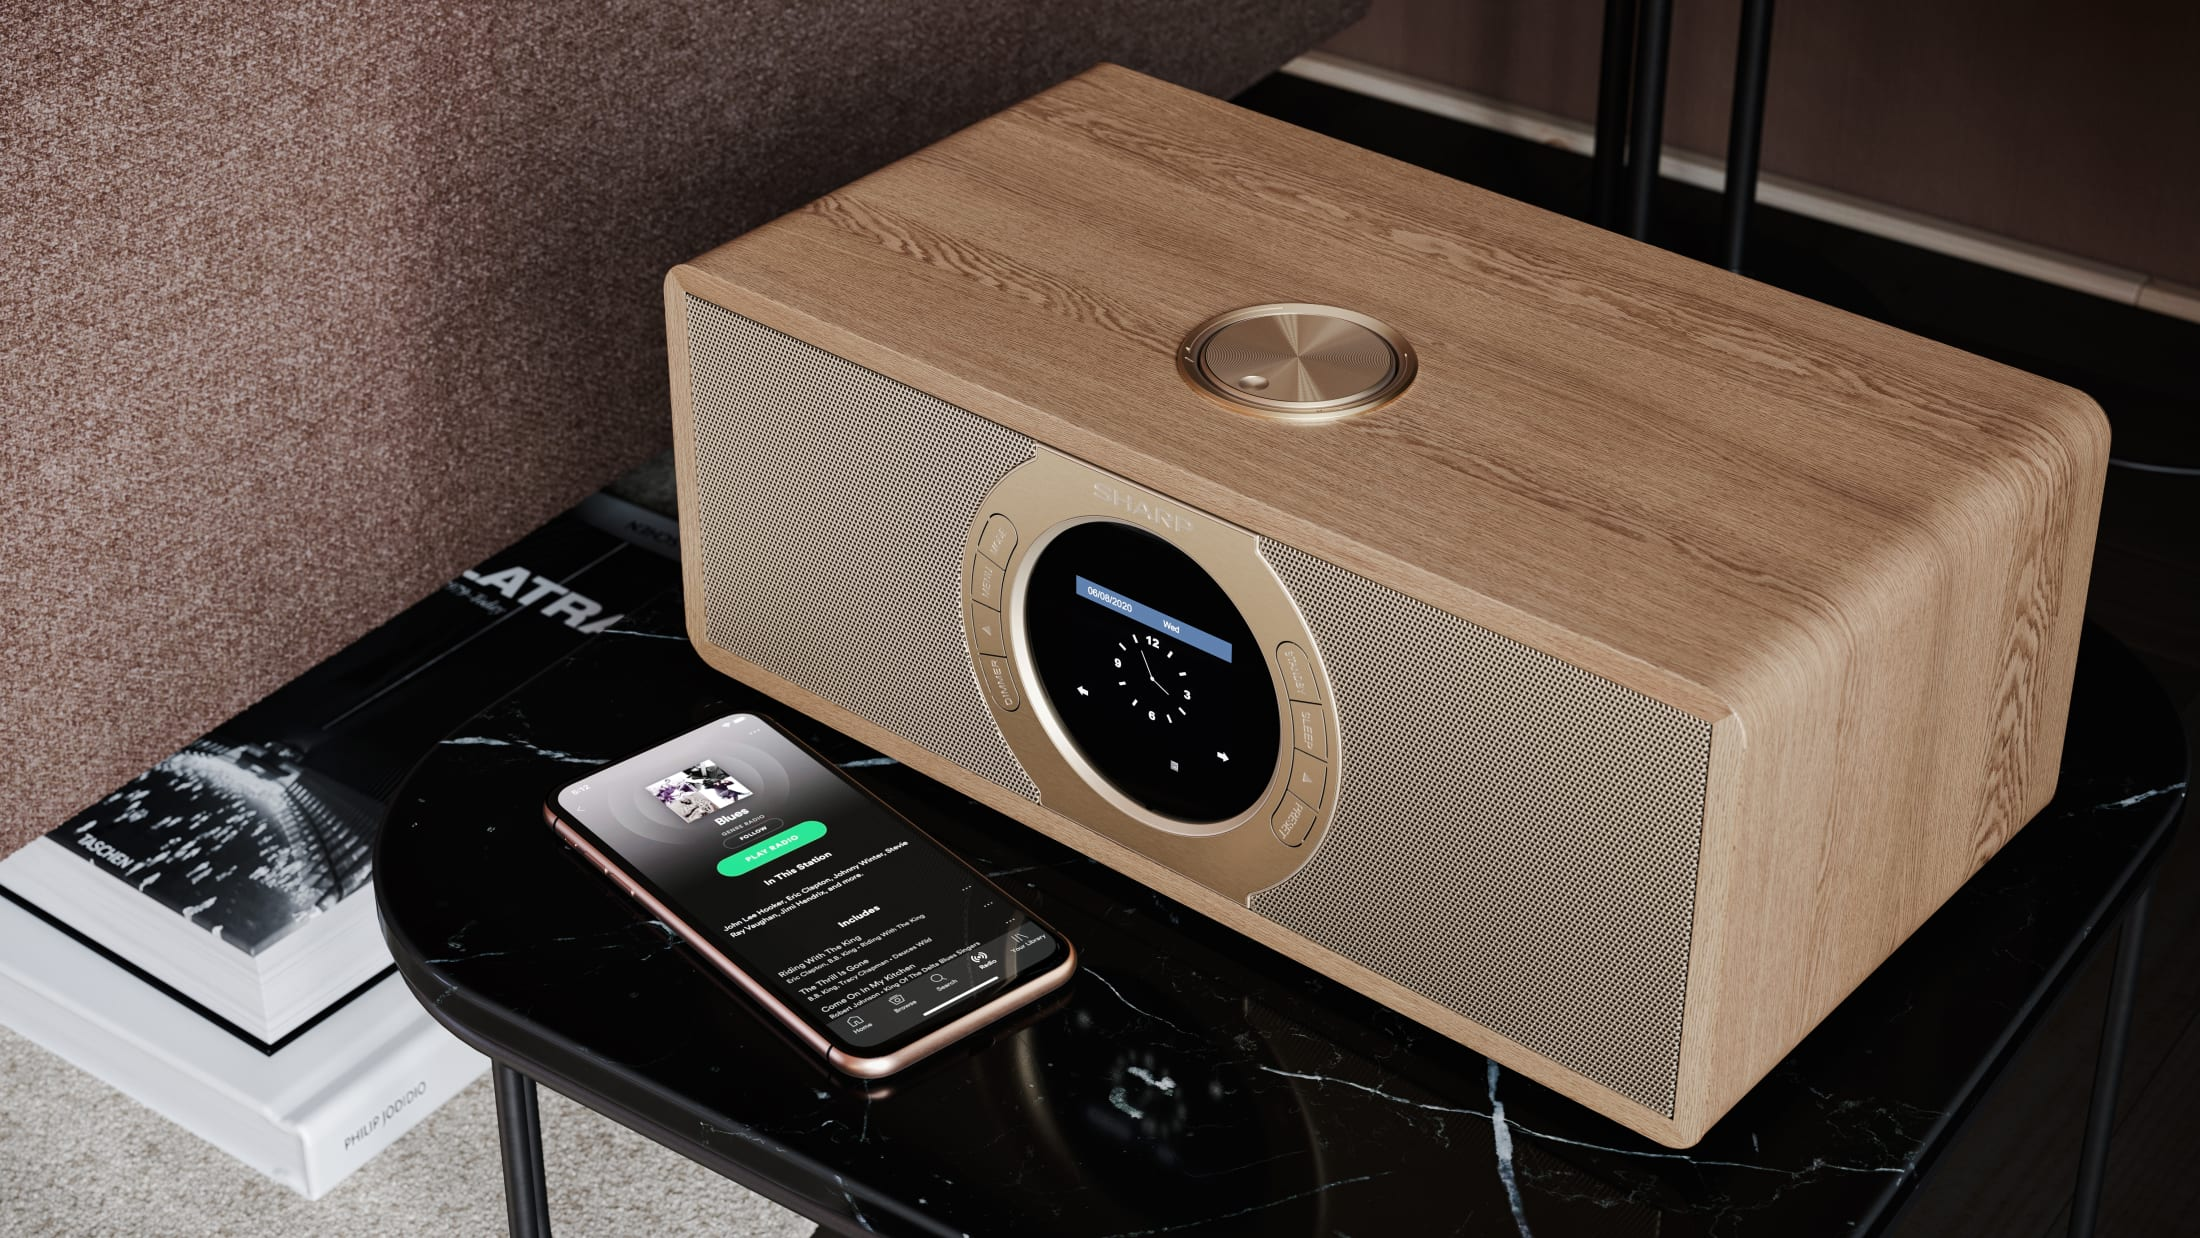 Stereo Internet-/Digitalradio DAB/DAB+/FM with RDS, 30 W, Spotify, Bluetooth and 60 station memory.